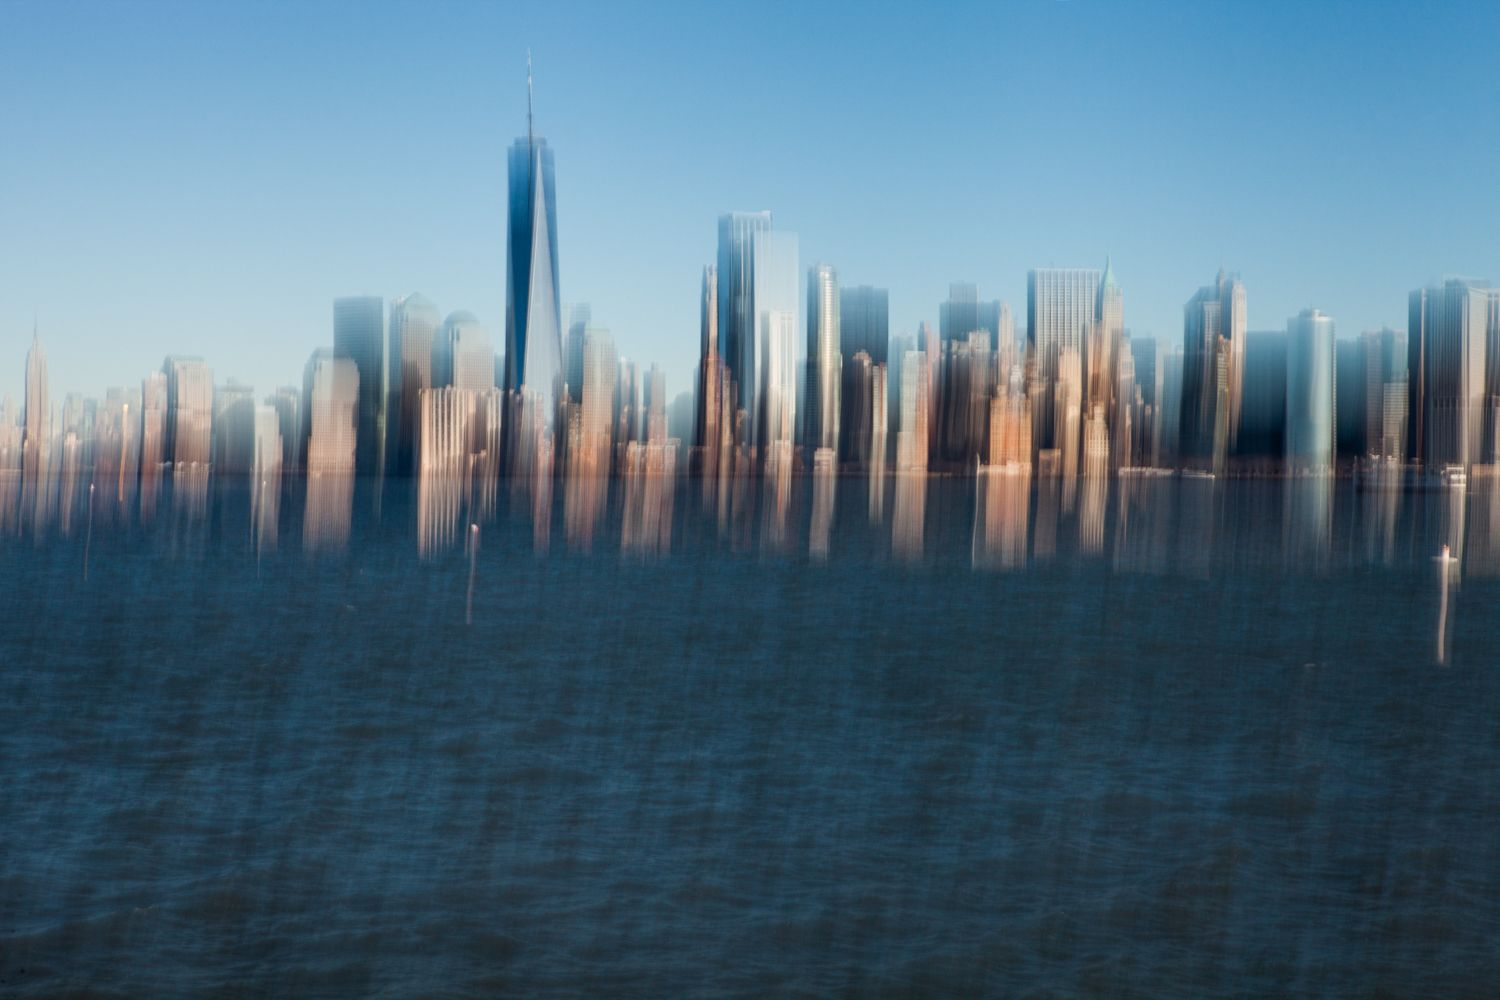 New York Dream 09,Xavier Dumoulin,Photography